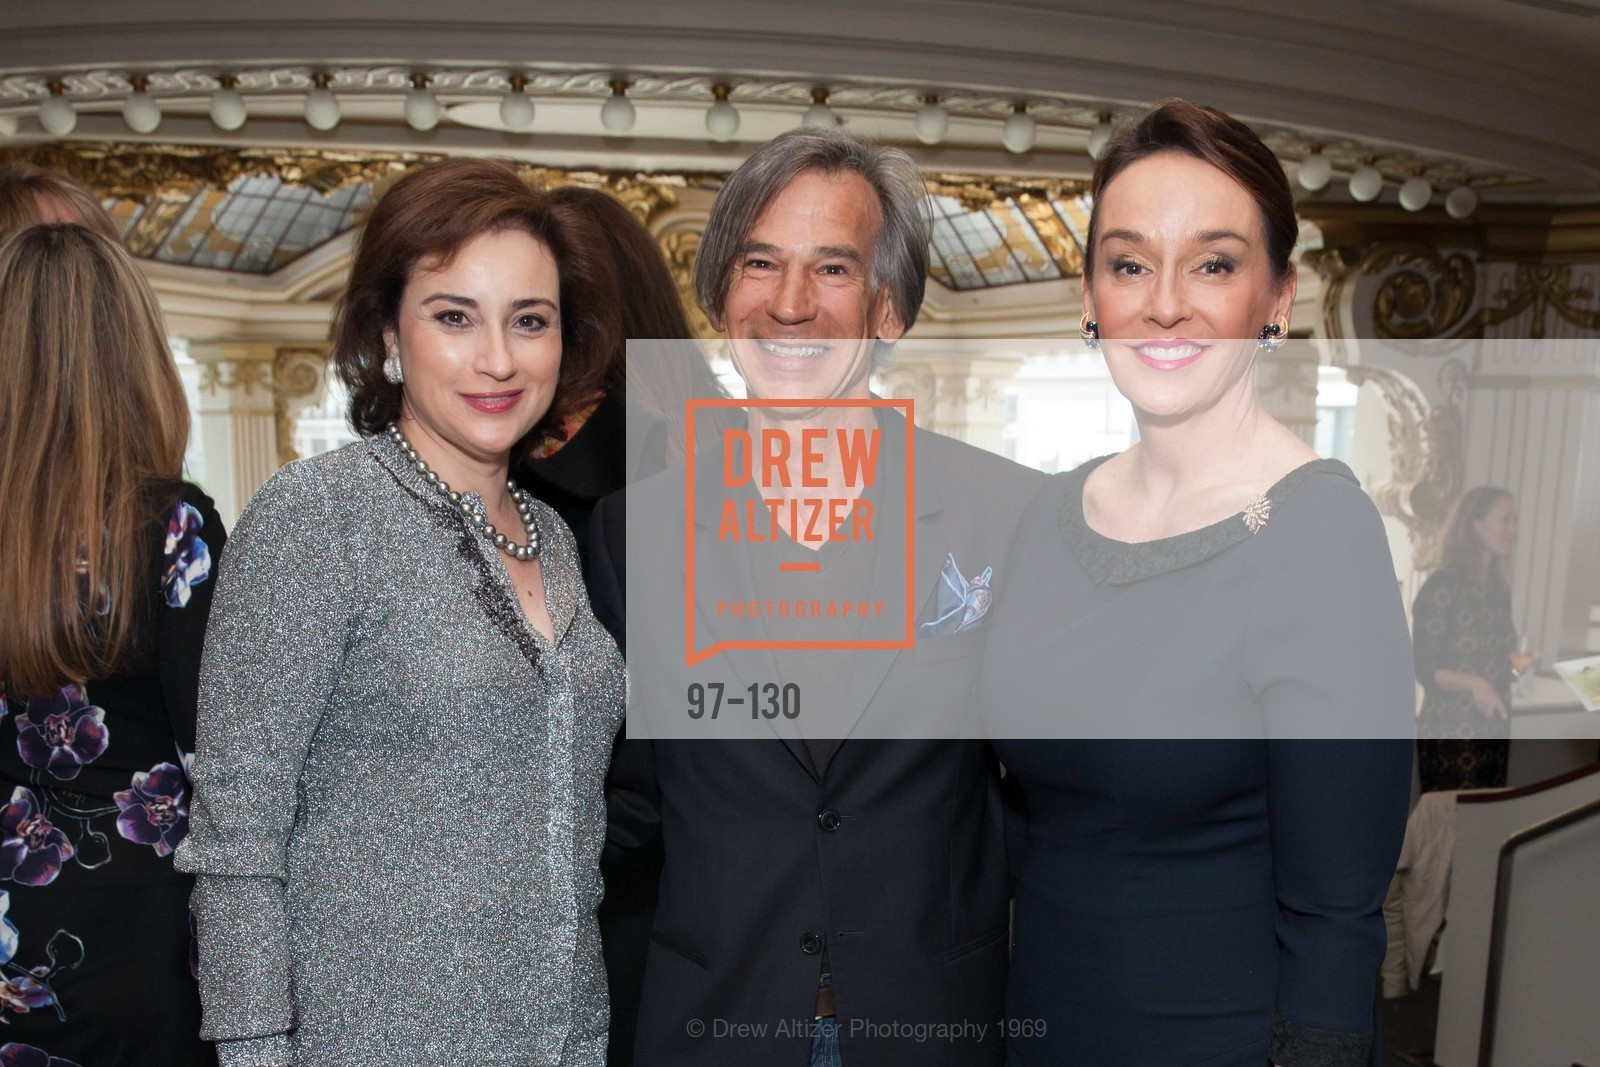 Dolly Chammas, Dan Dieguez, Elisa Stephens, Electric Fashion Book Signing with Christine Suppes & Ken Downing, Neiman Marcus, Rotunda, May 26th, 2015,Drew Altizer, Drew Altizer Photography, full-service agency, private events, San Francisco photographer, photographer california